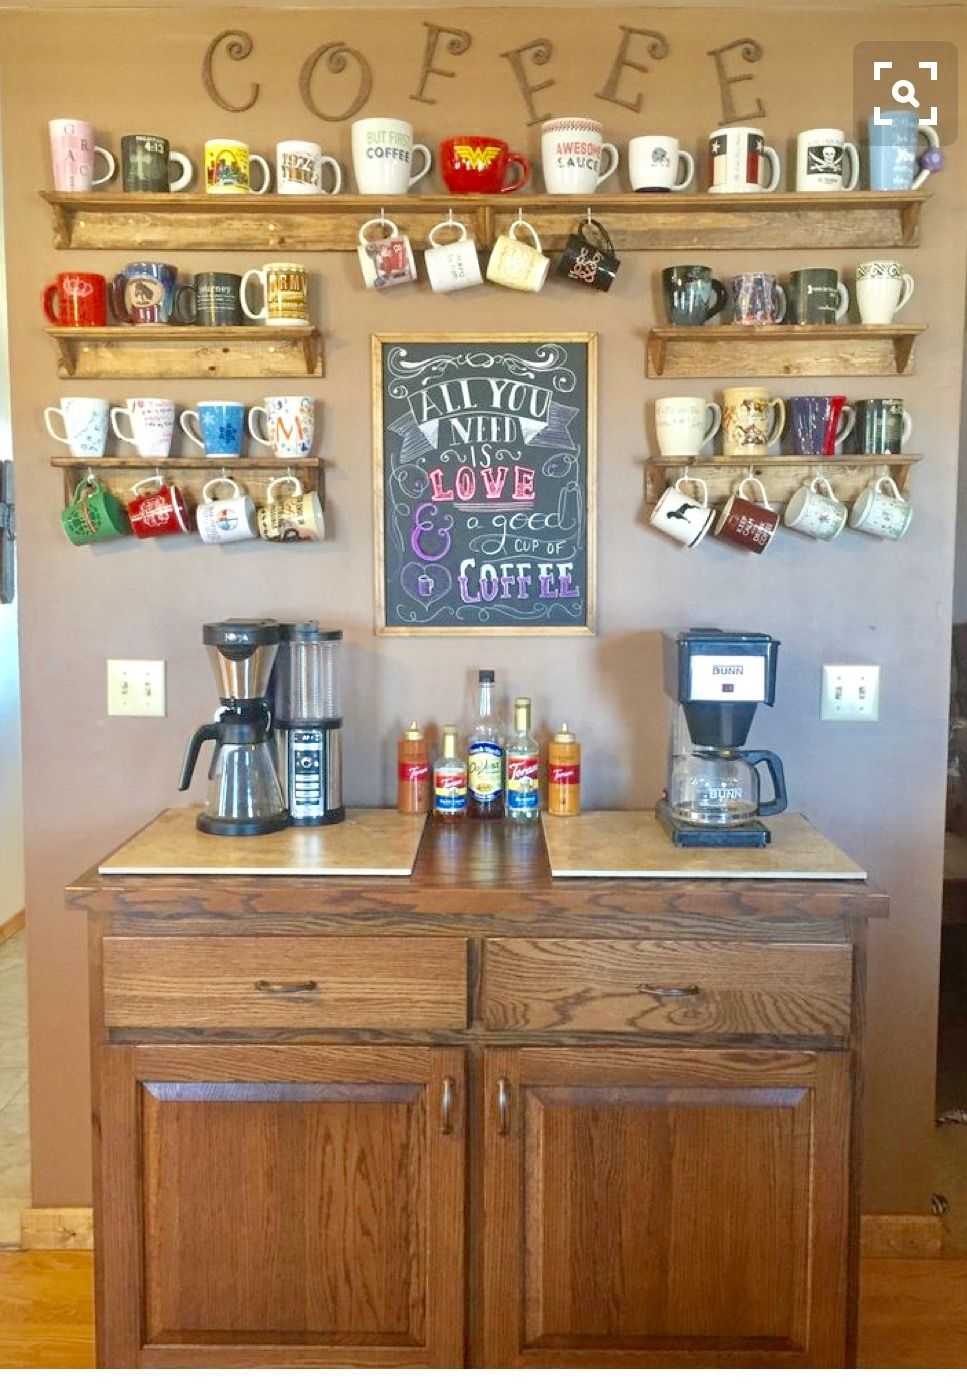 I see this in my future future abode pinterest coffee